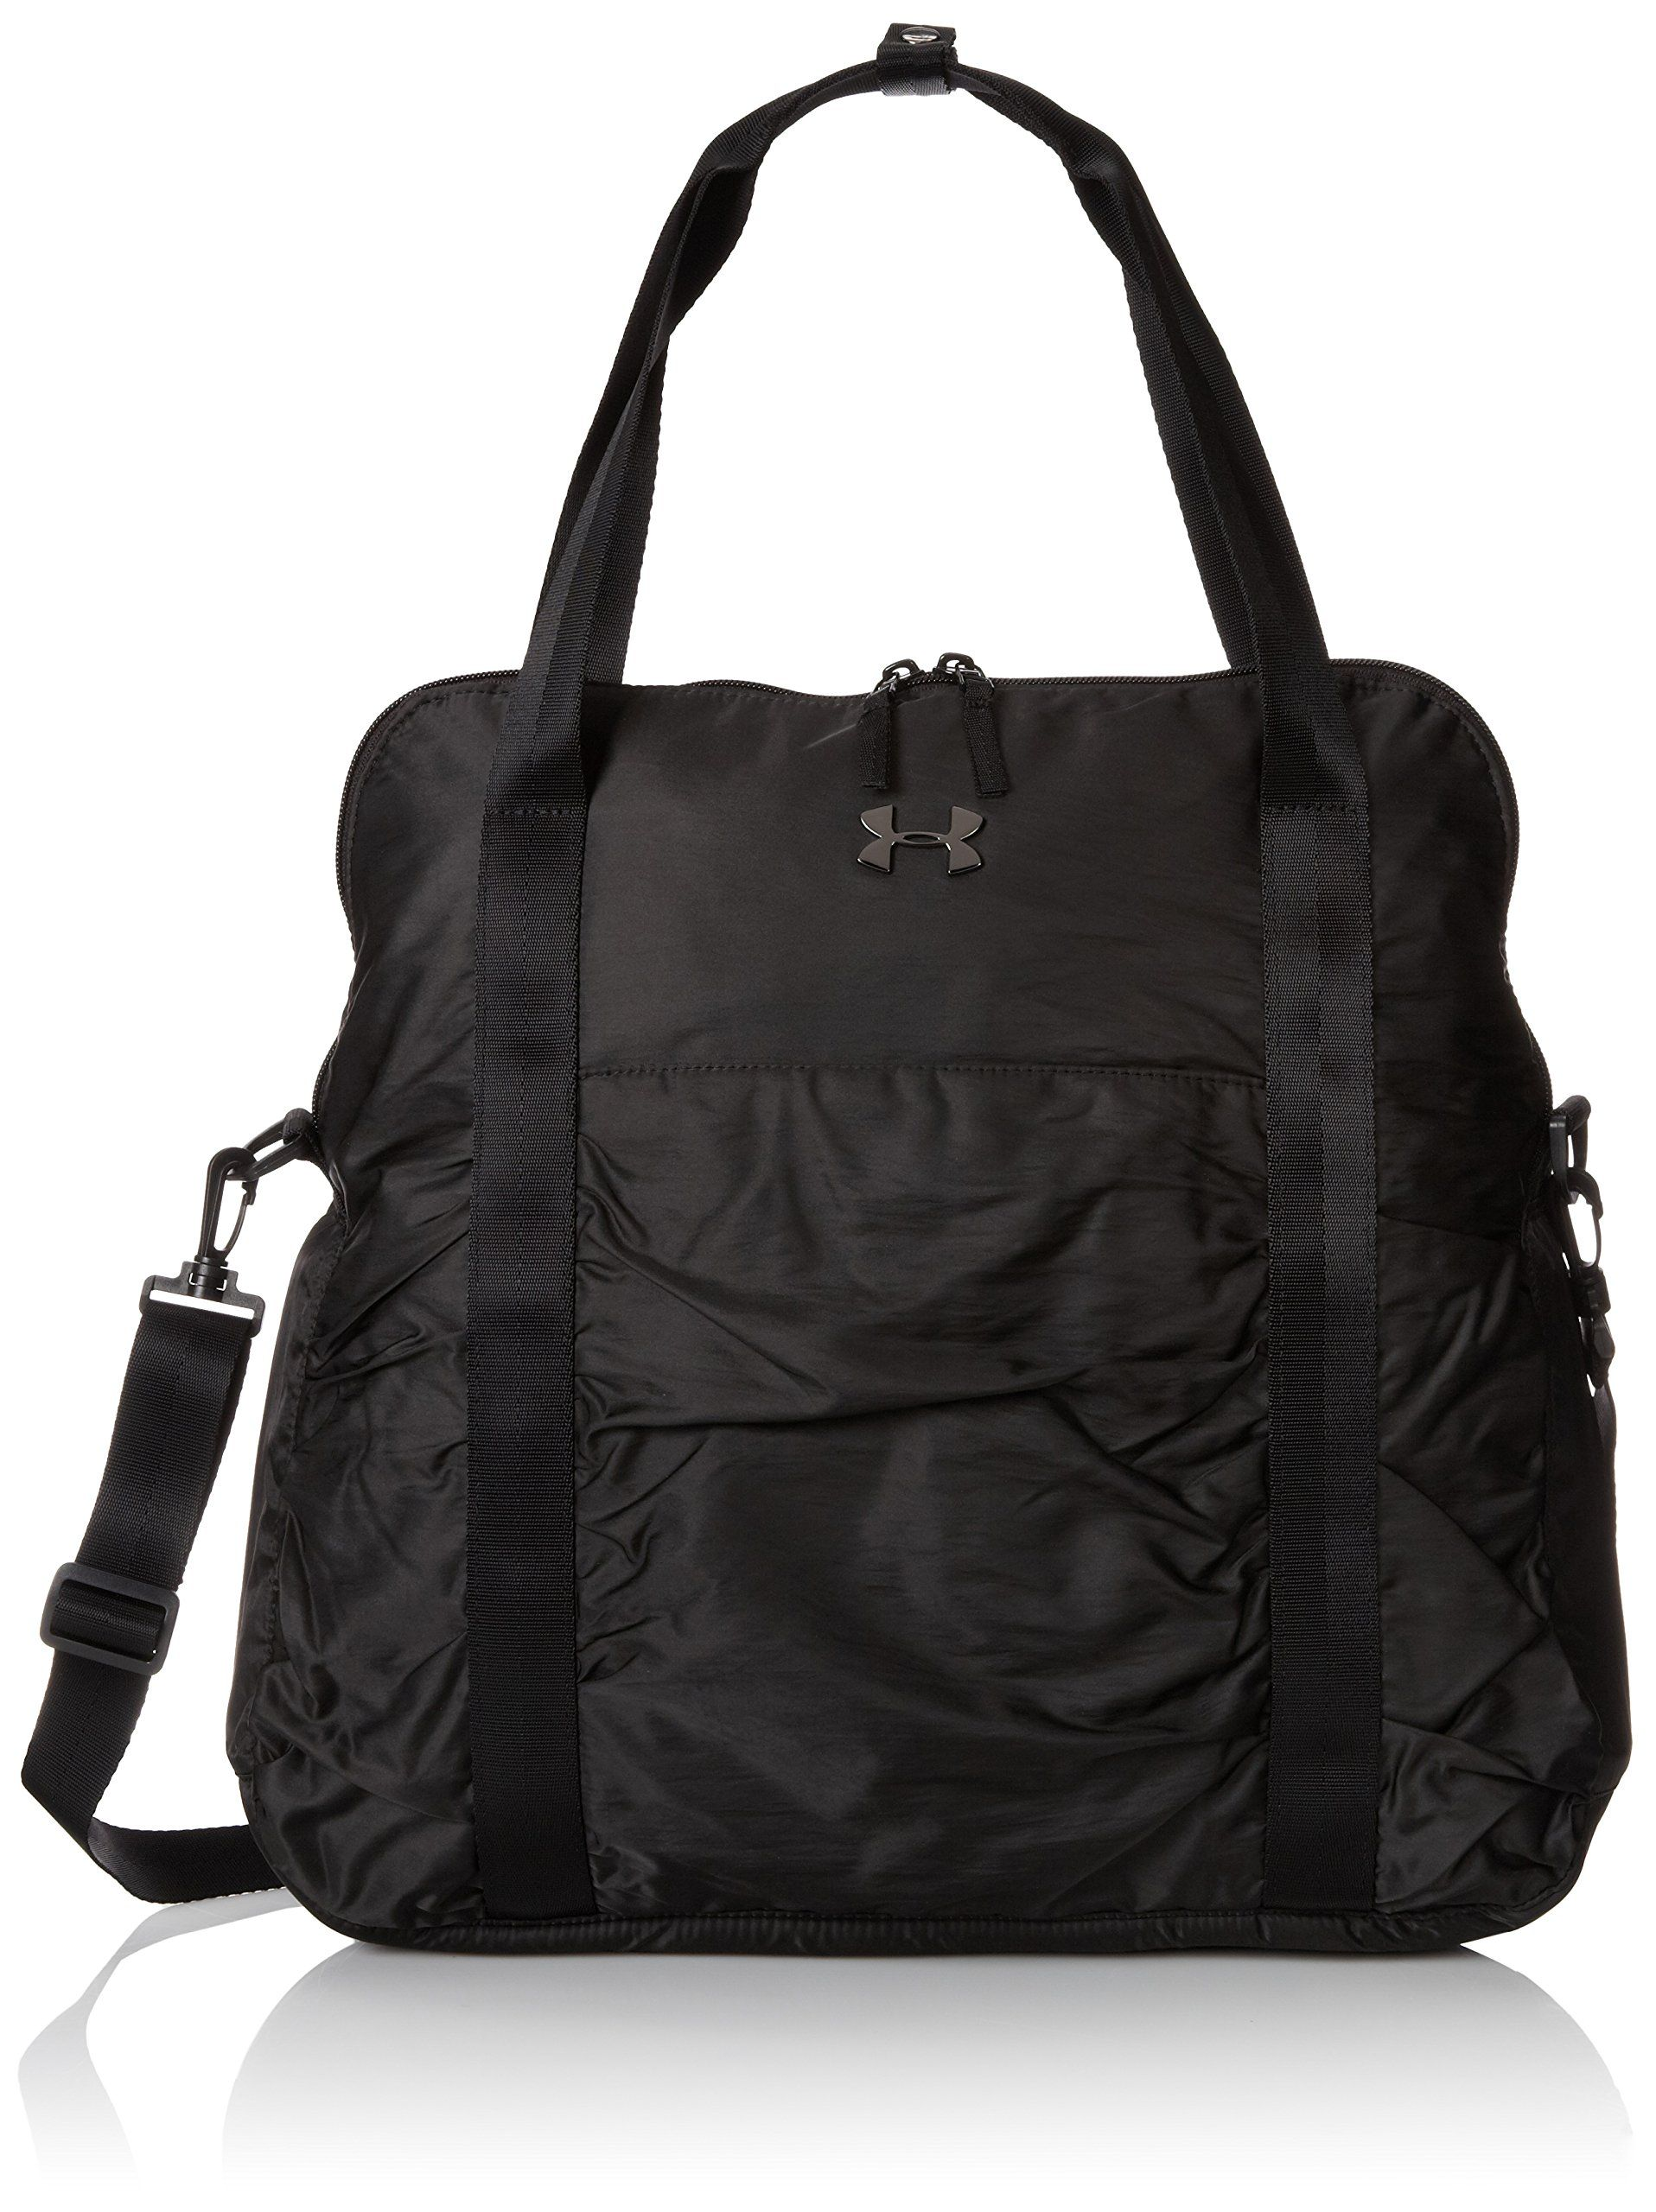 7052404a266e Amazon.com  Under Armour Women s UA Gotta Have It Tote One Size Fits All  Black  Clothing